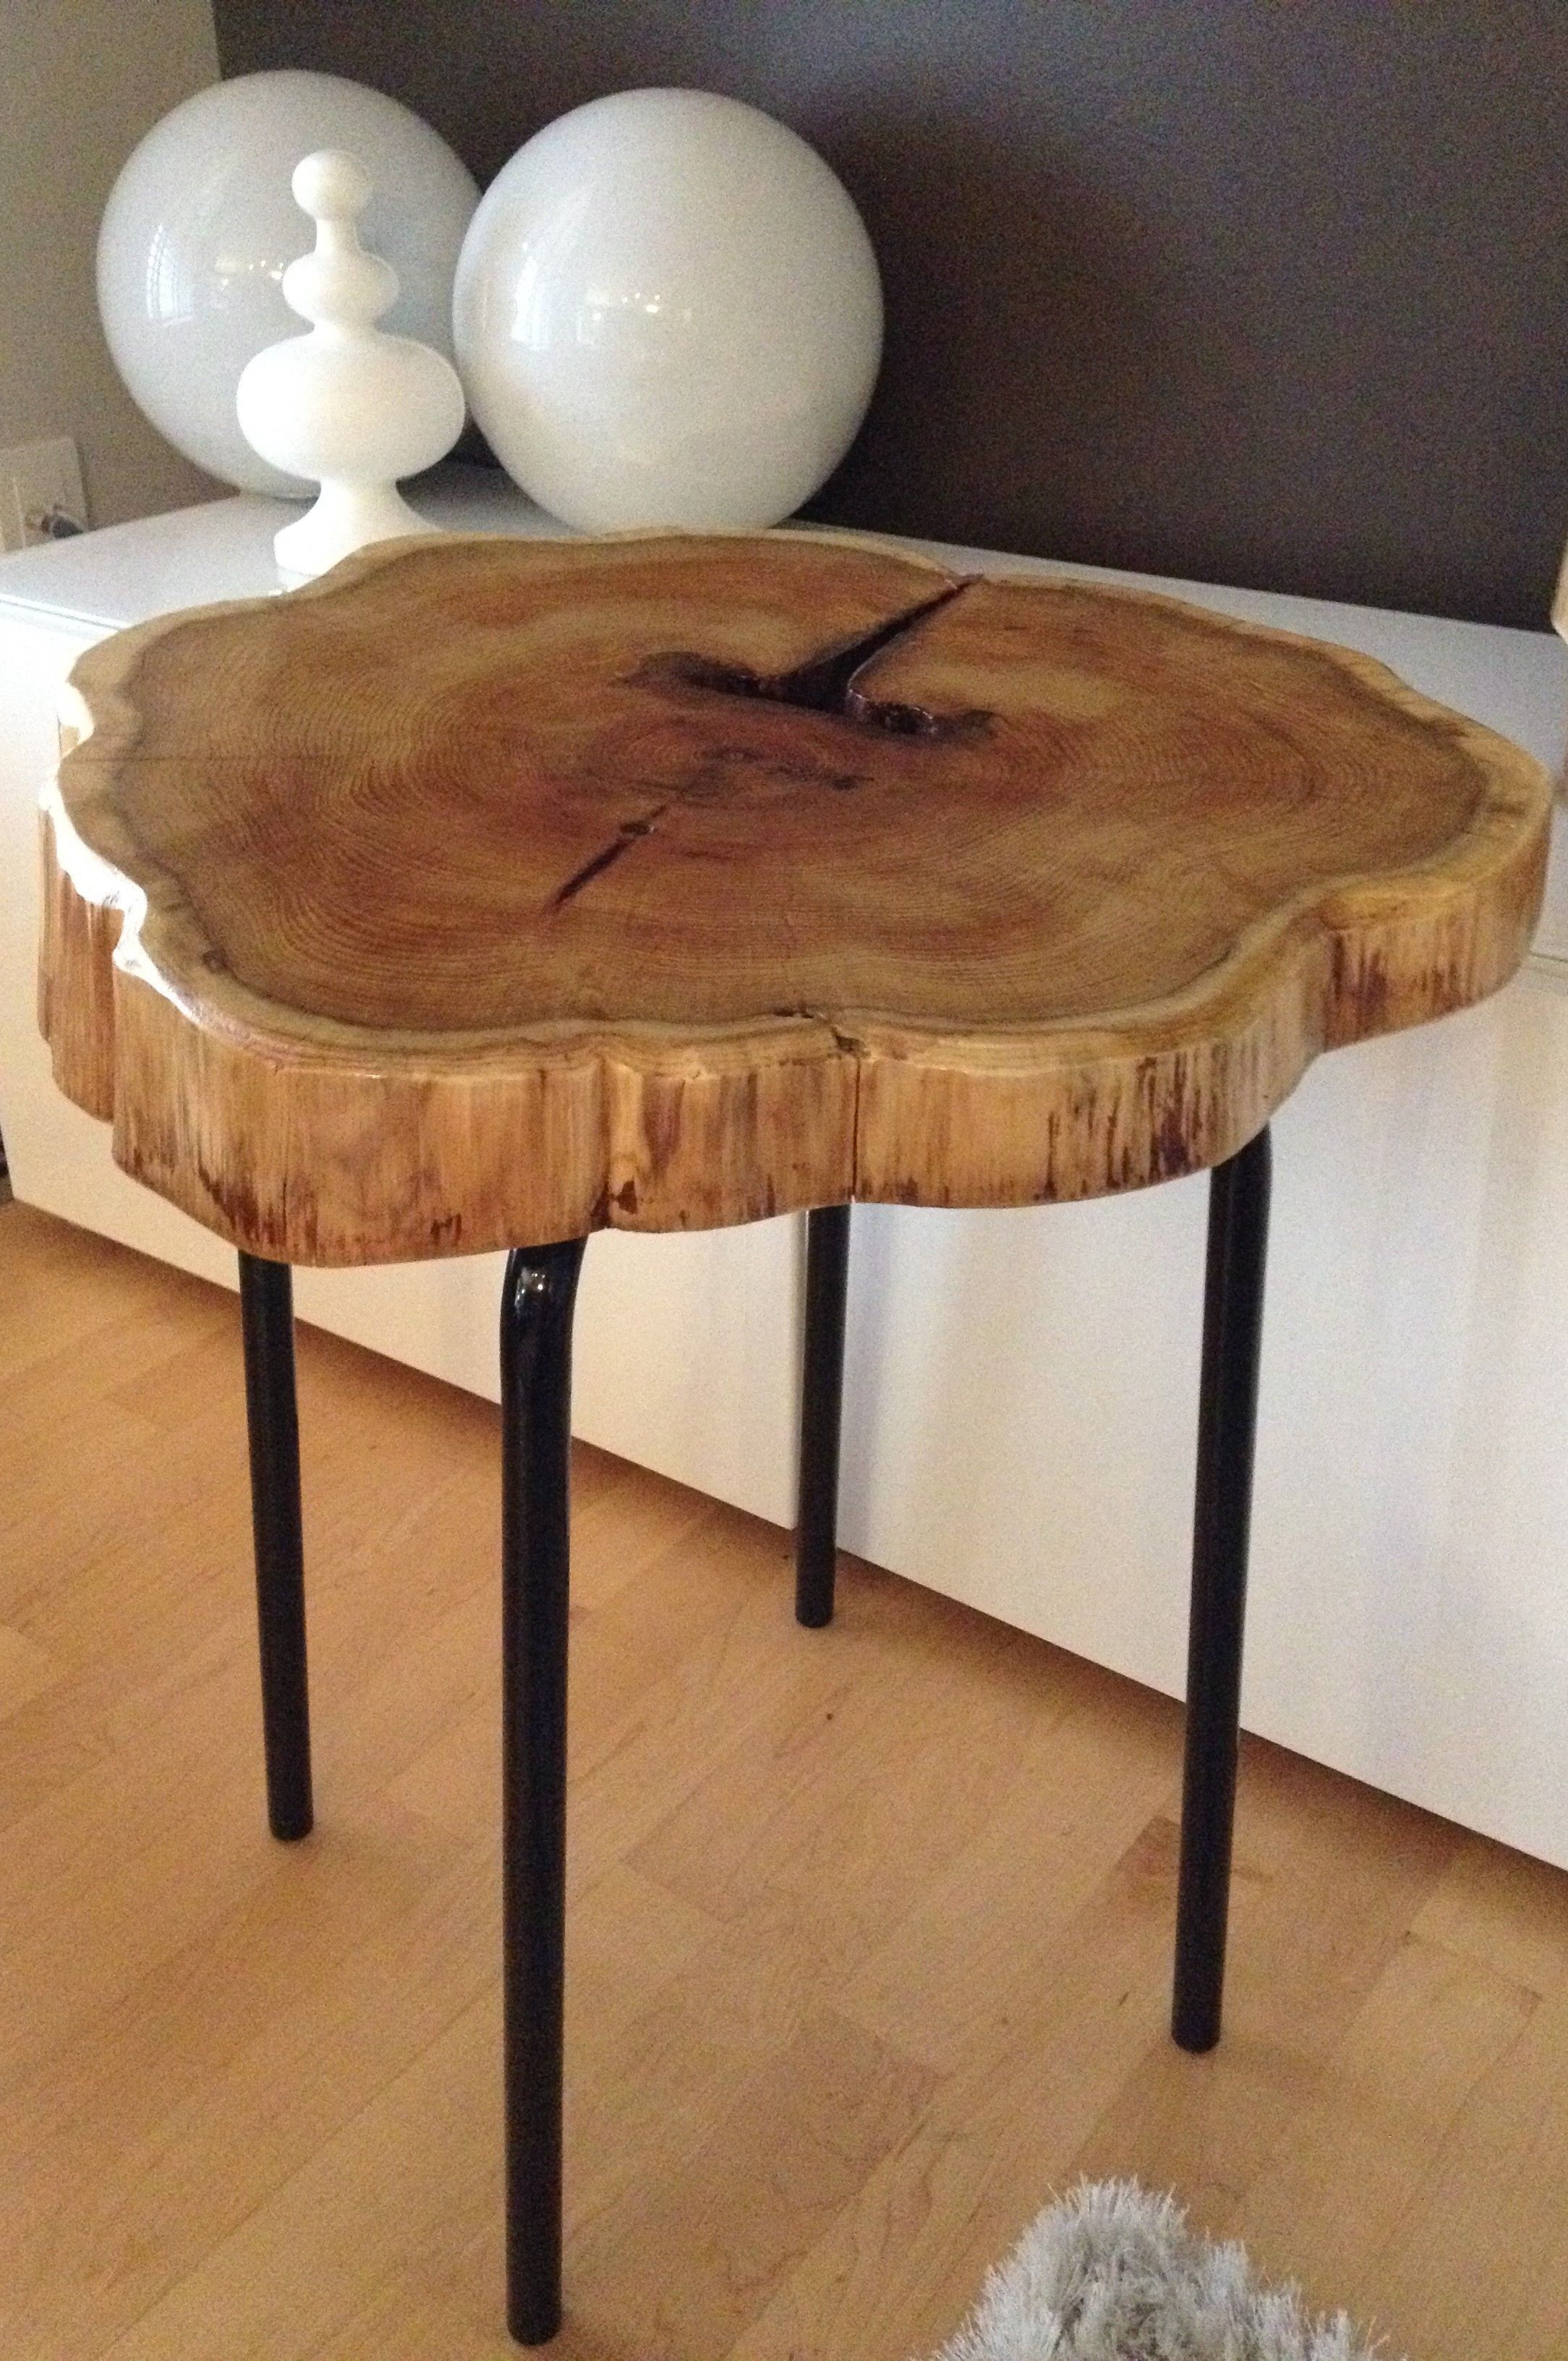 stump end table cedar with metal legs log serenitystumps bedroom accent tables ethan allen court art van couches drum side yellow bedside square coffee rattan chair short shallow